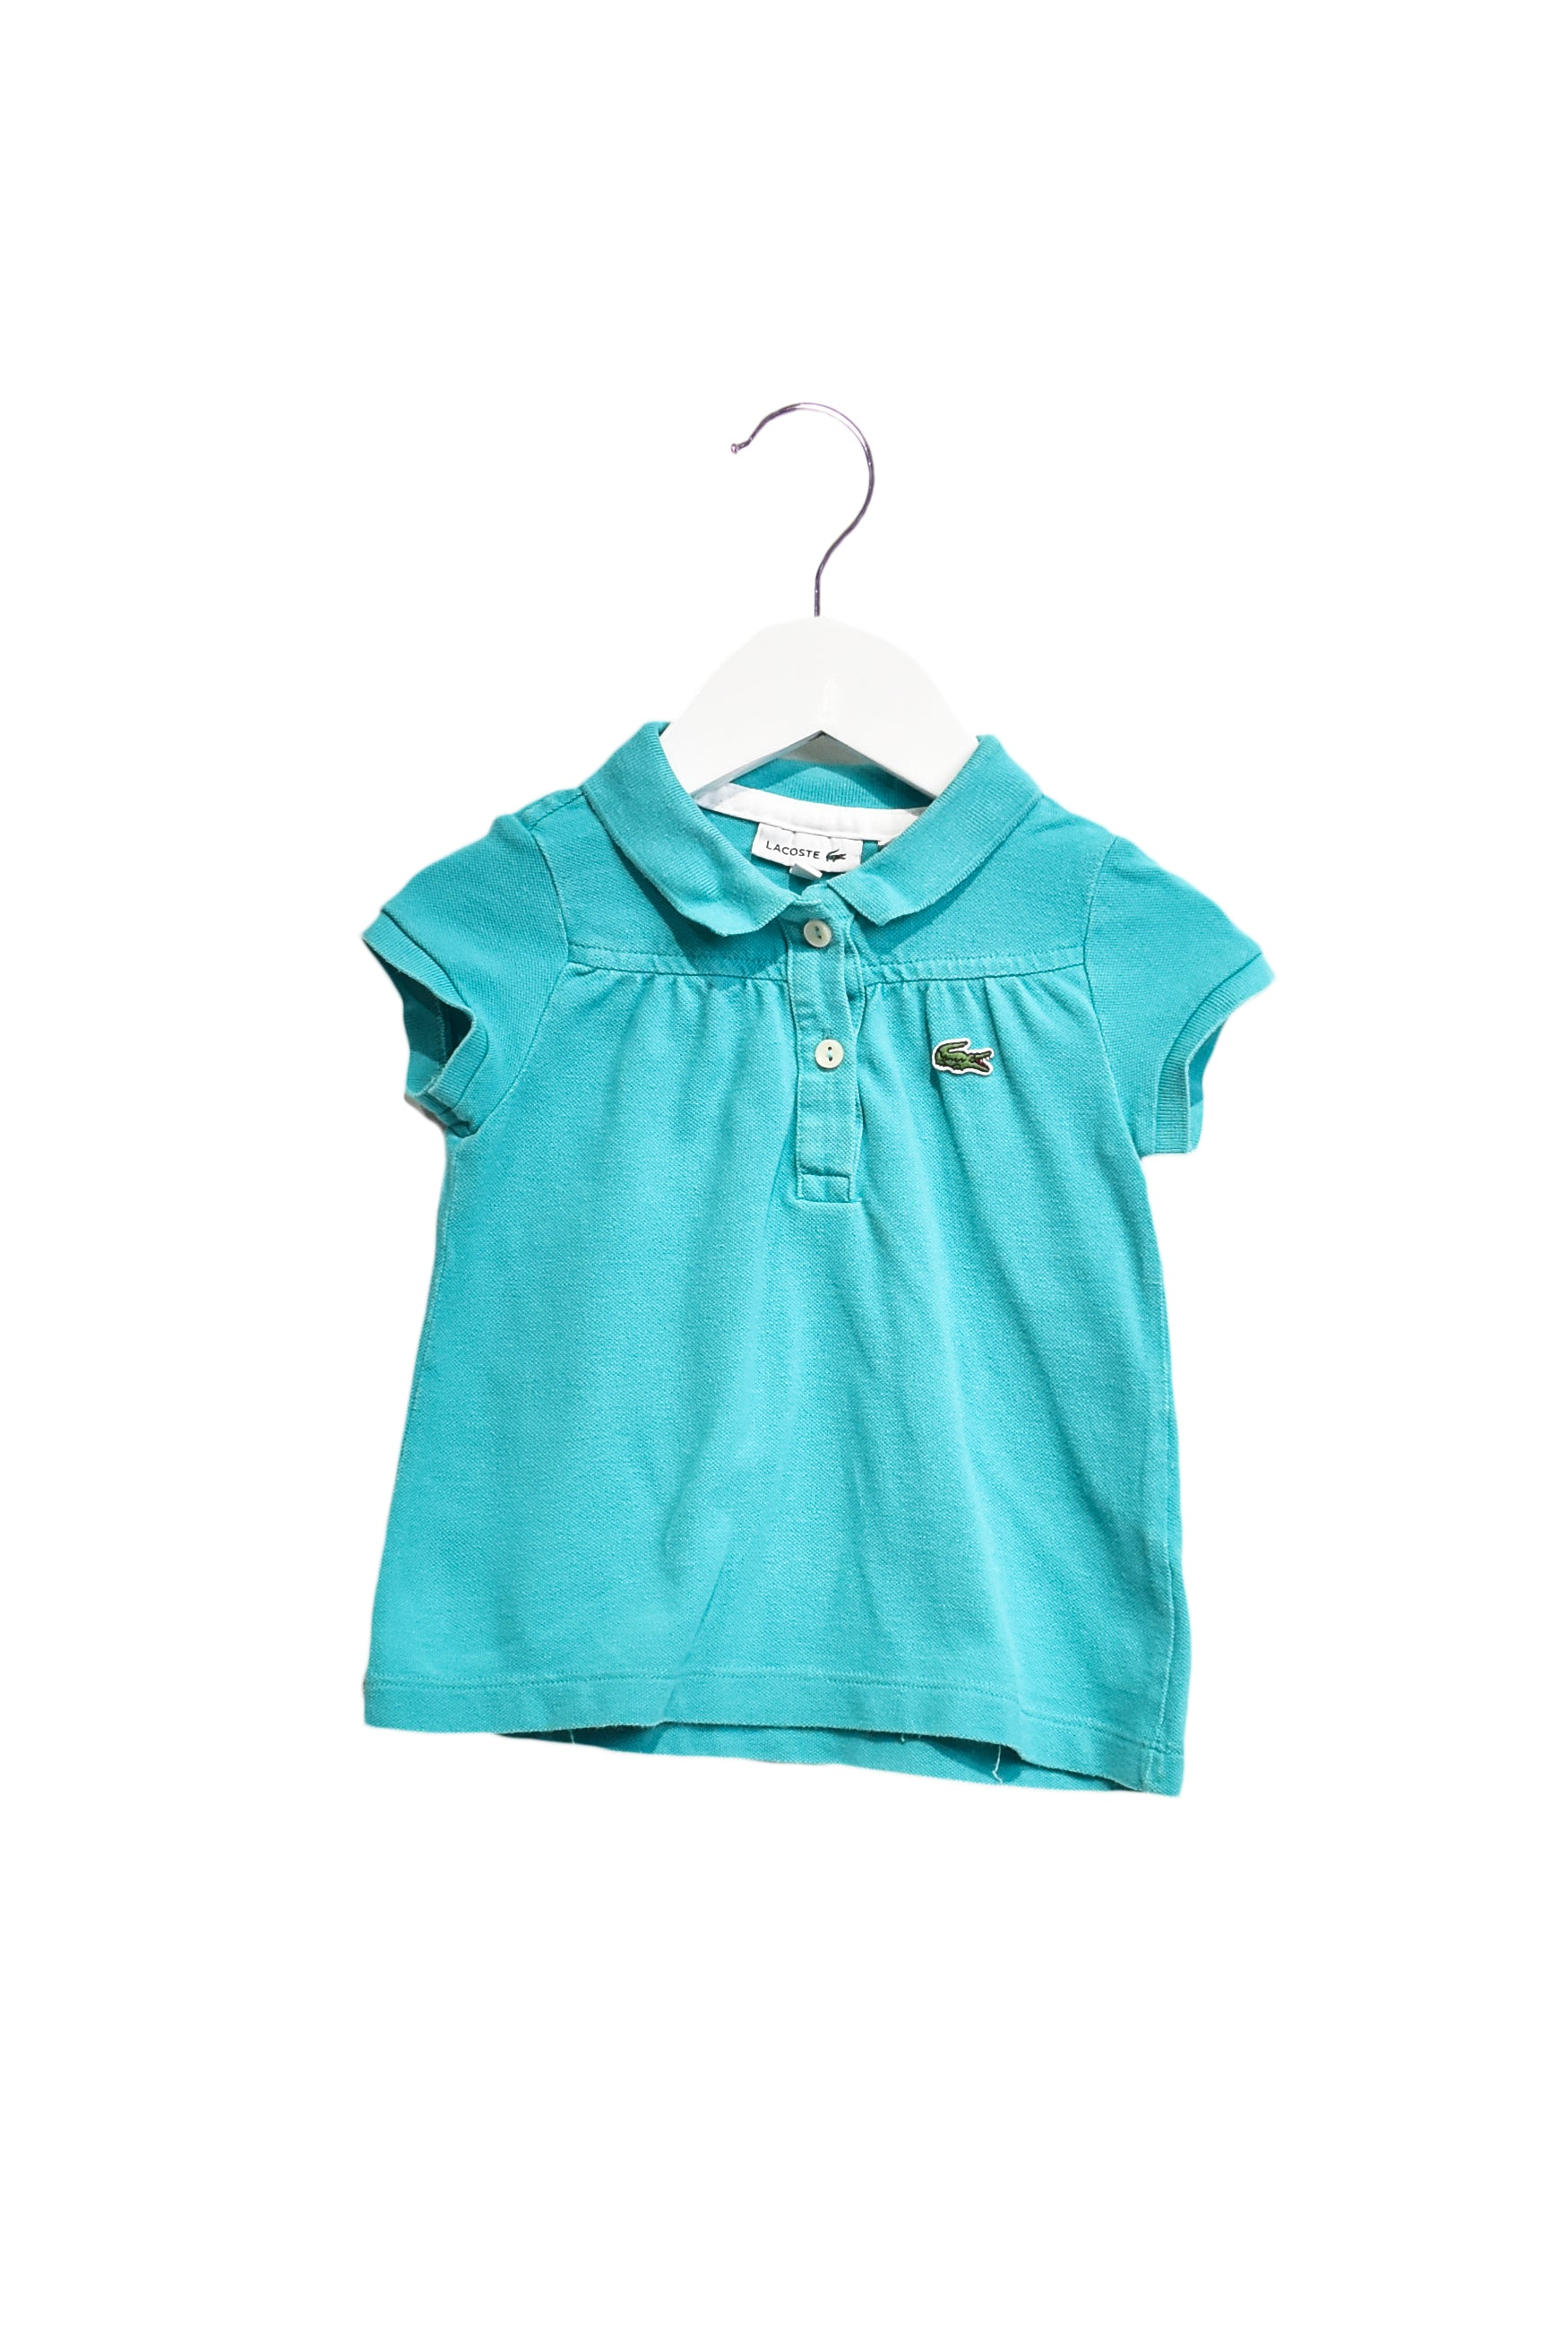 108b3ac75 10017633 Lacoste Kids~Polo 2T at Retykle